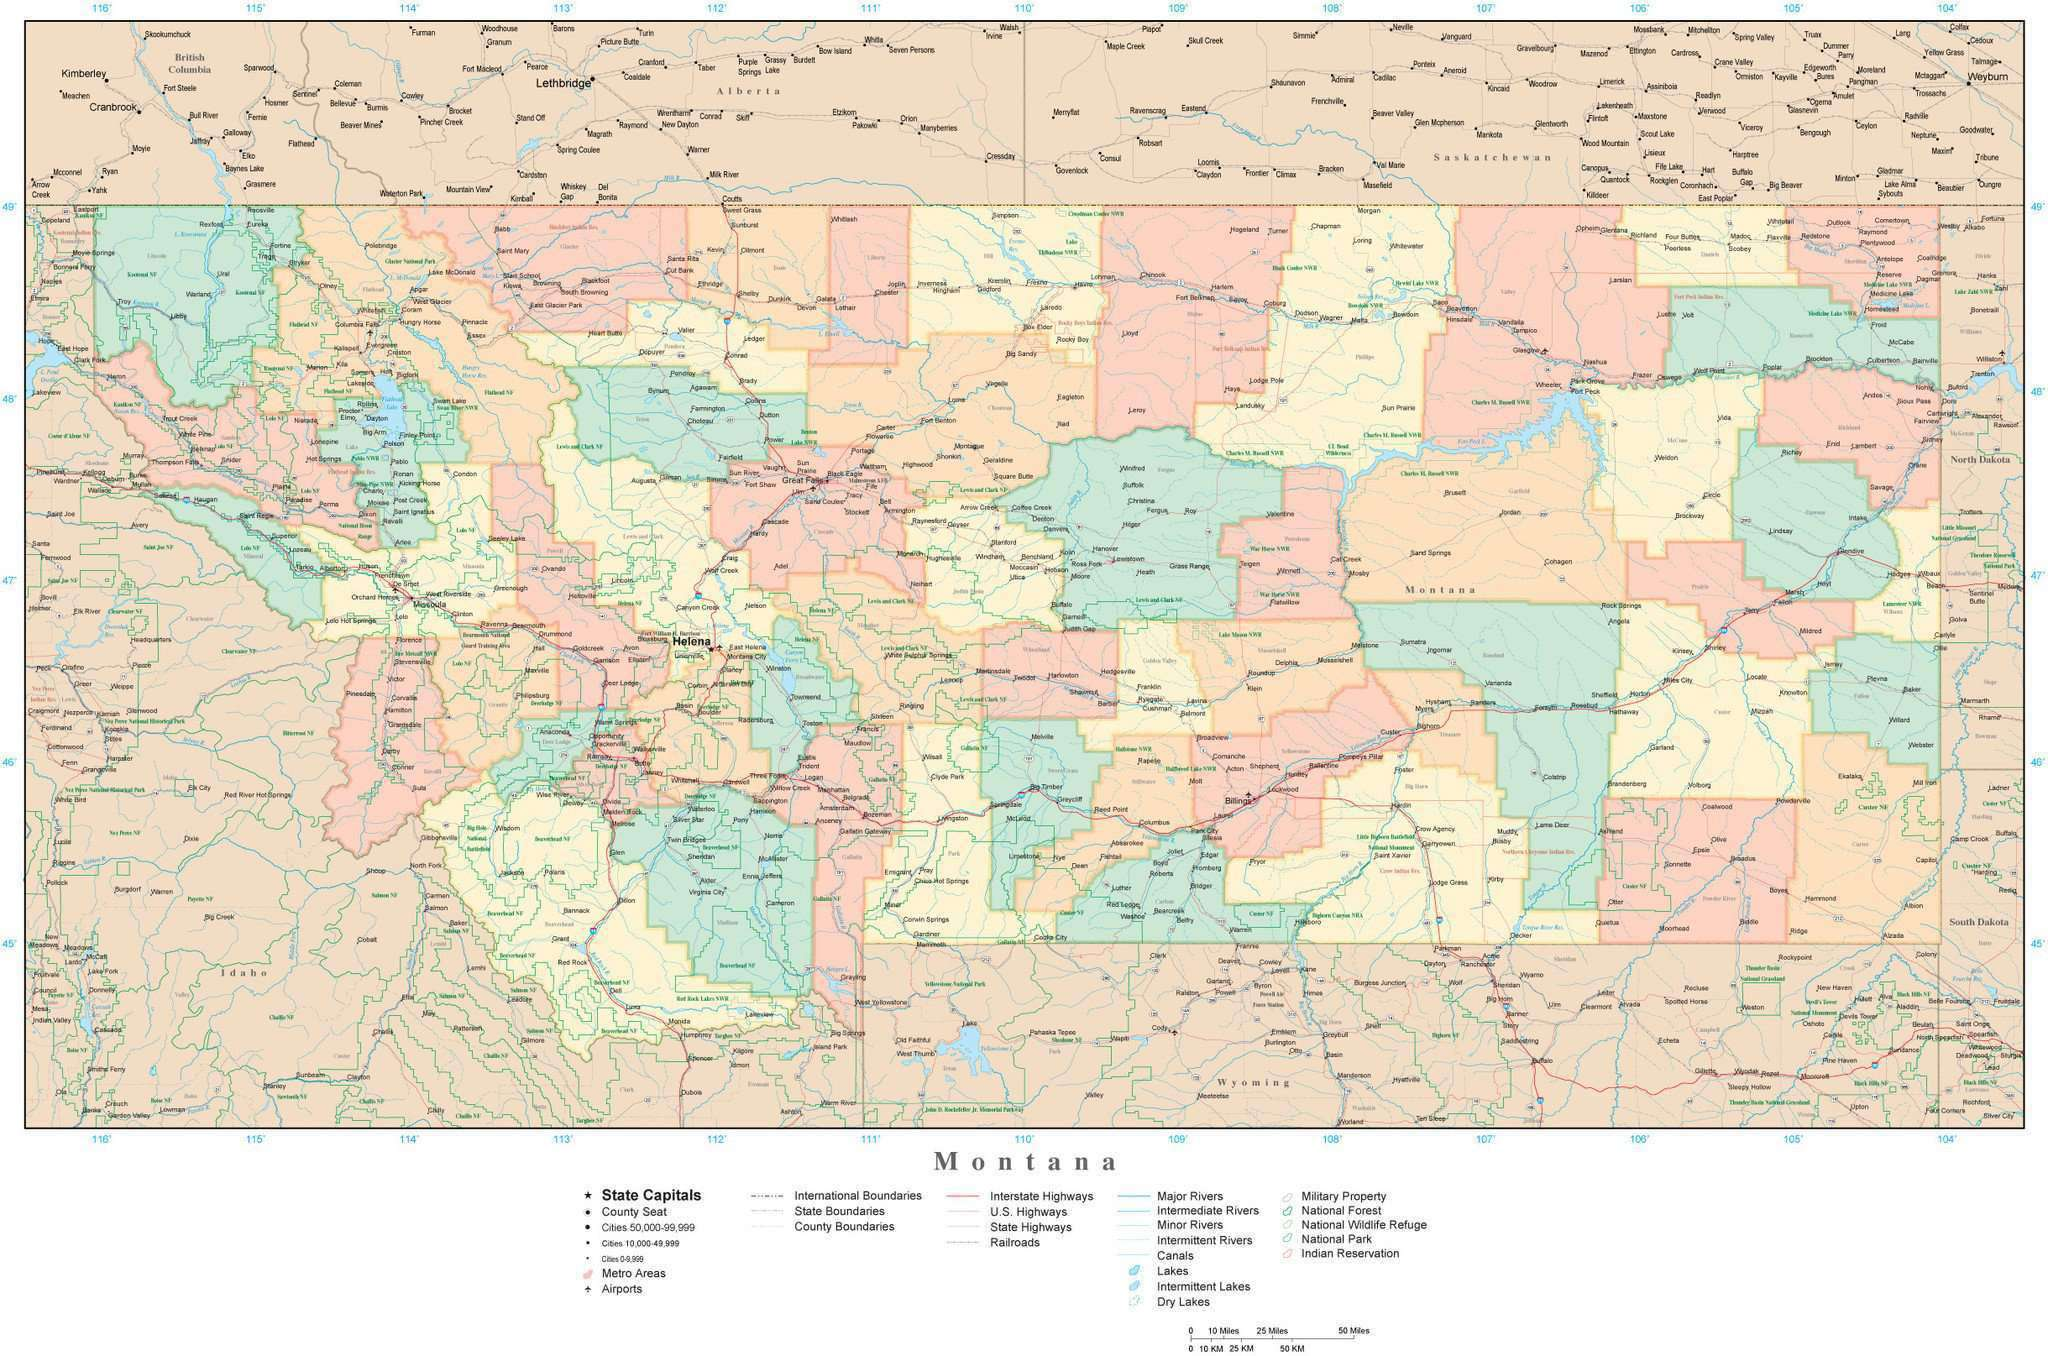 Montana State Map With Counties.Montana State Map In Adobe Illustrator Vector Format Detailed